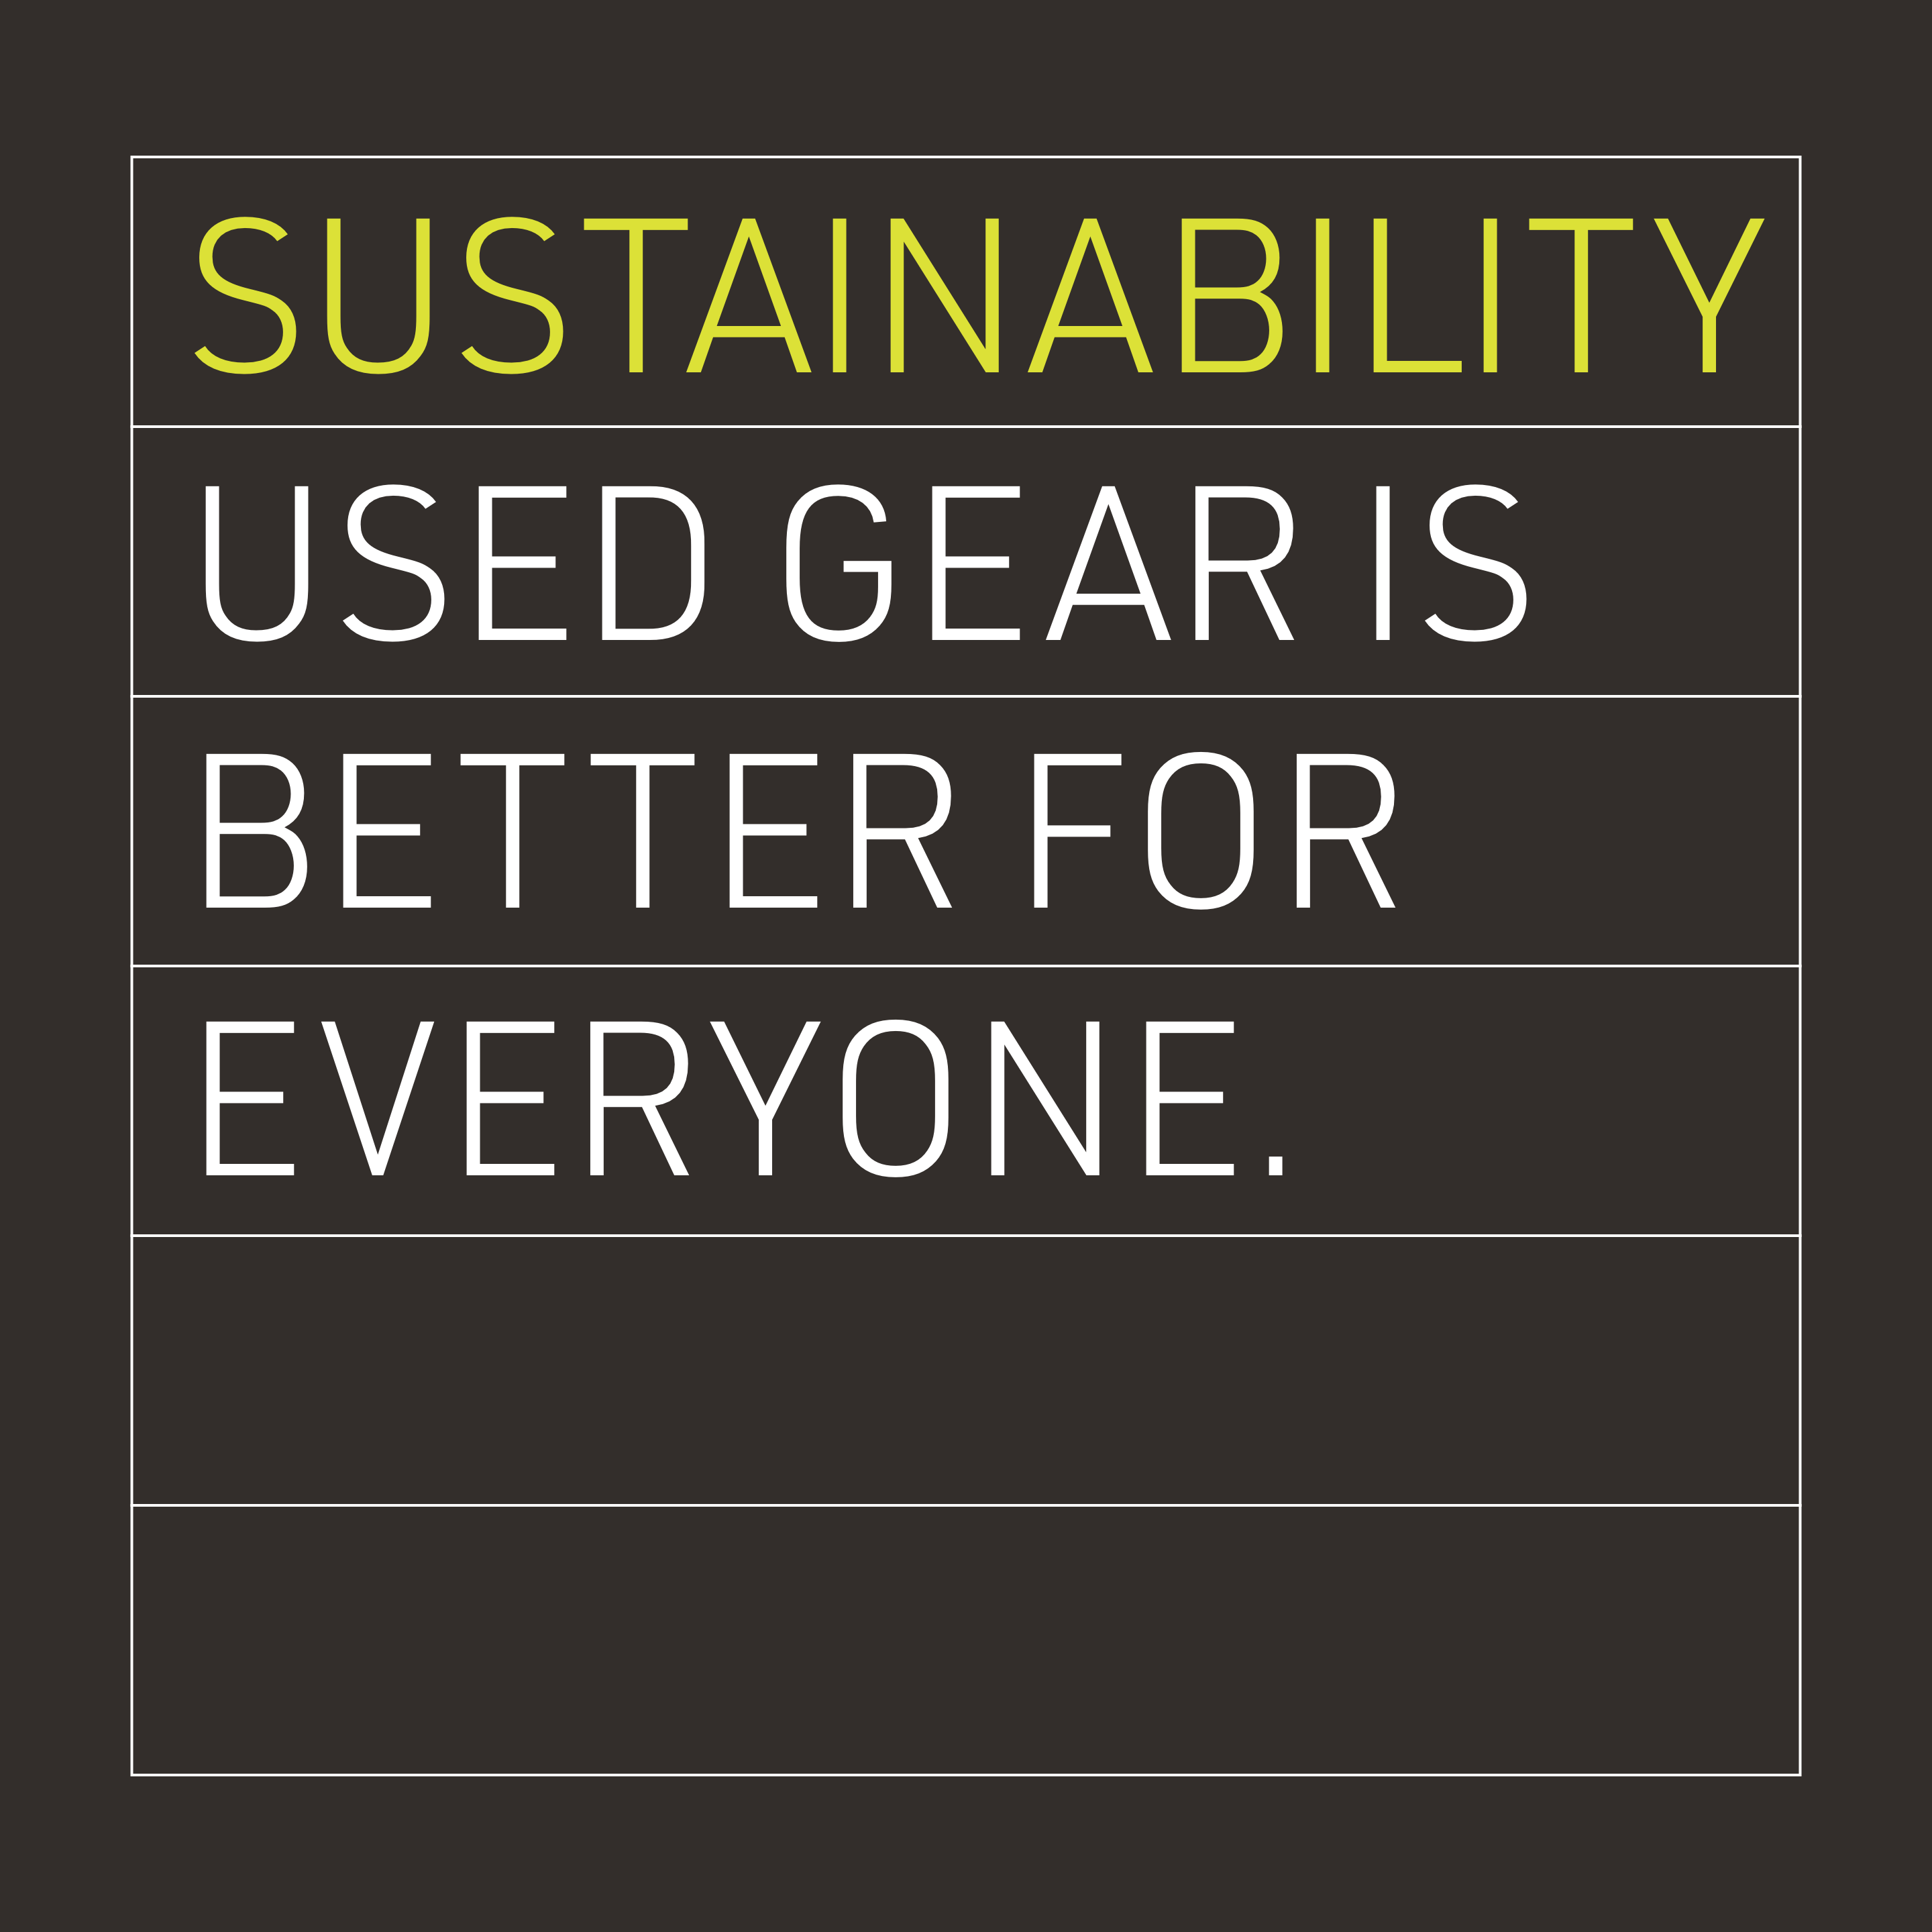 Sustainability: Used gear is better for everyone